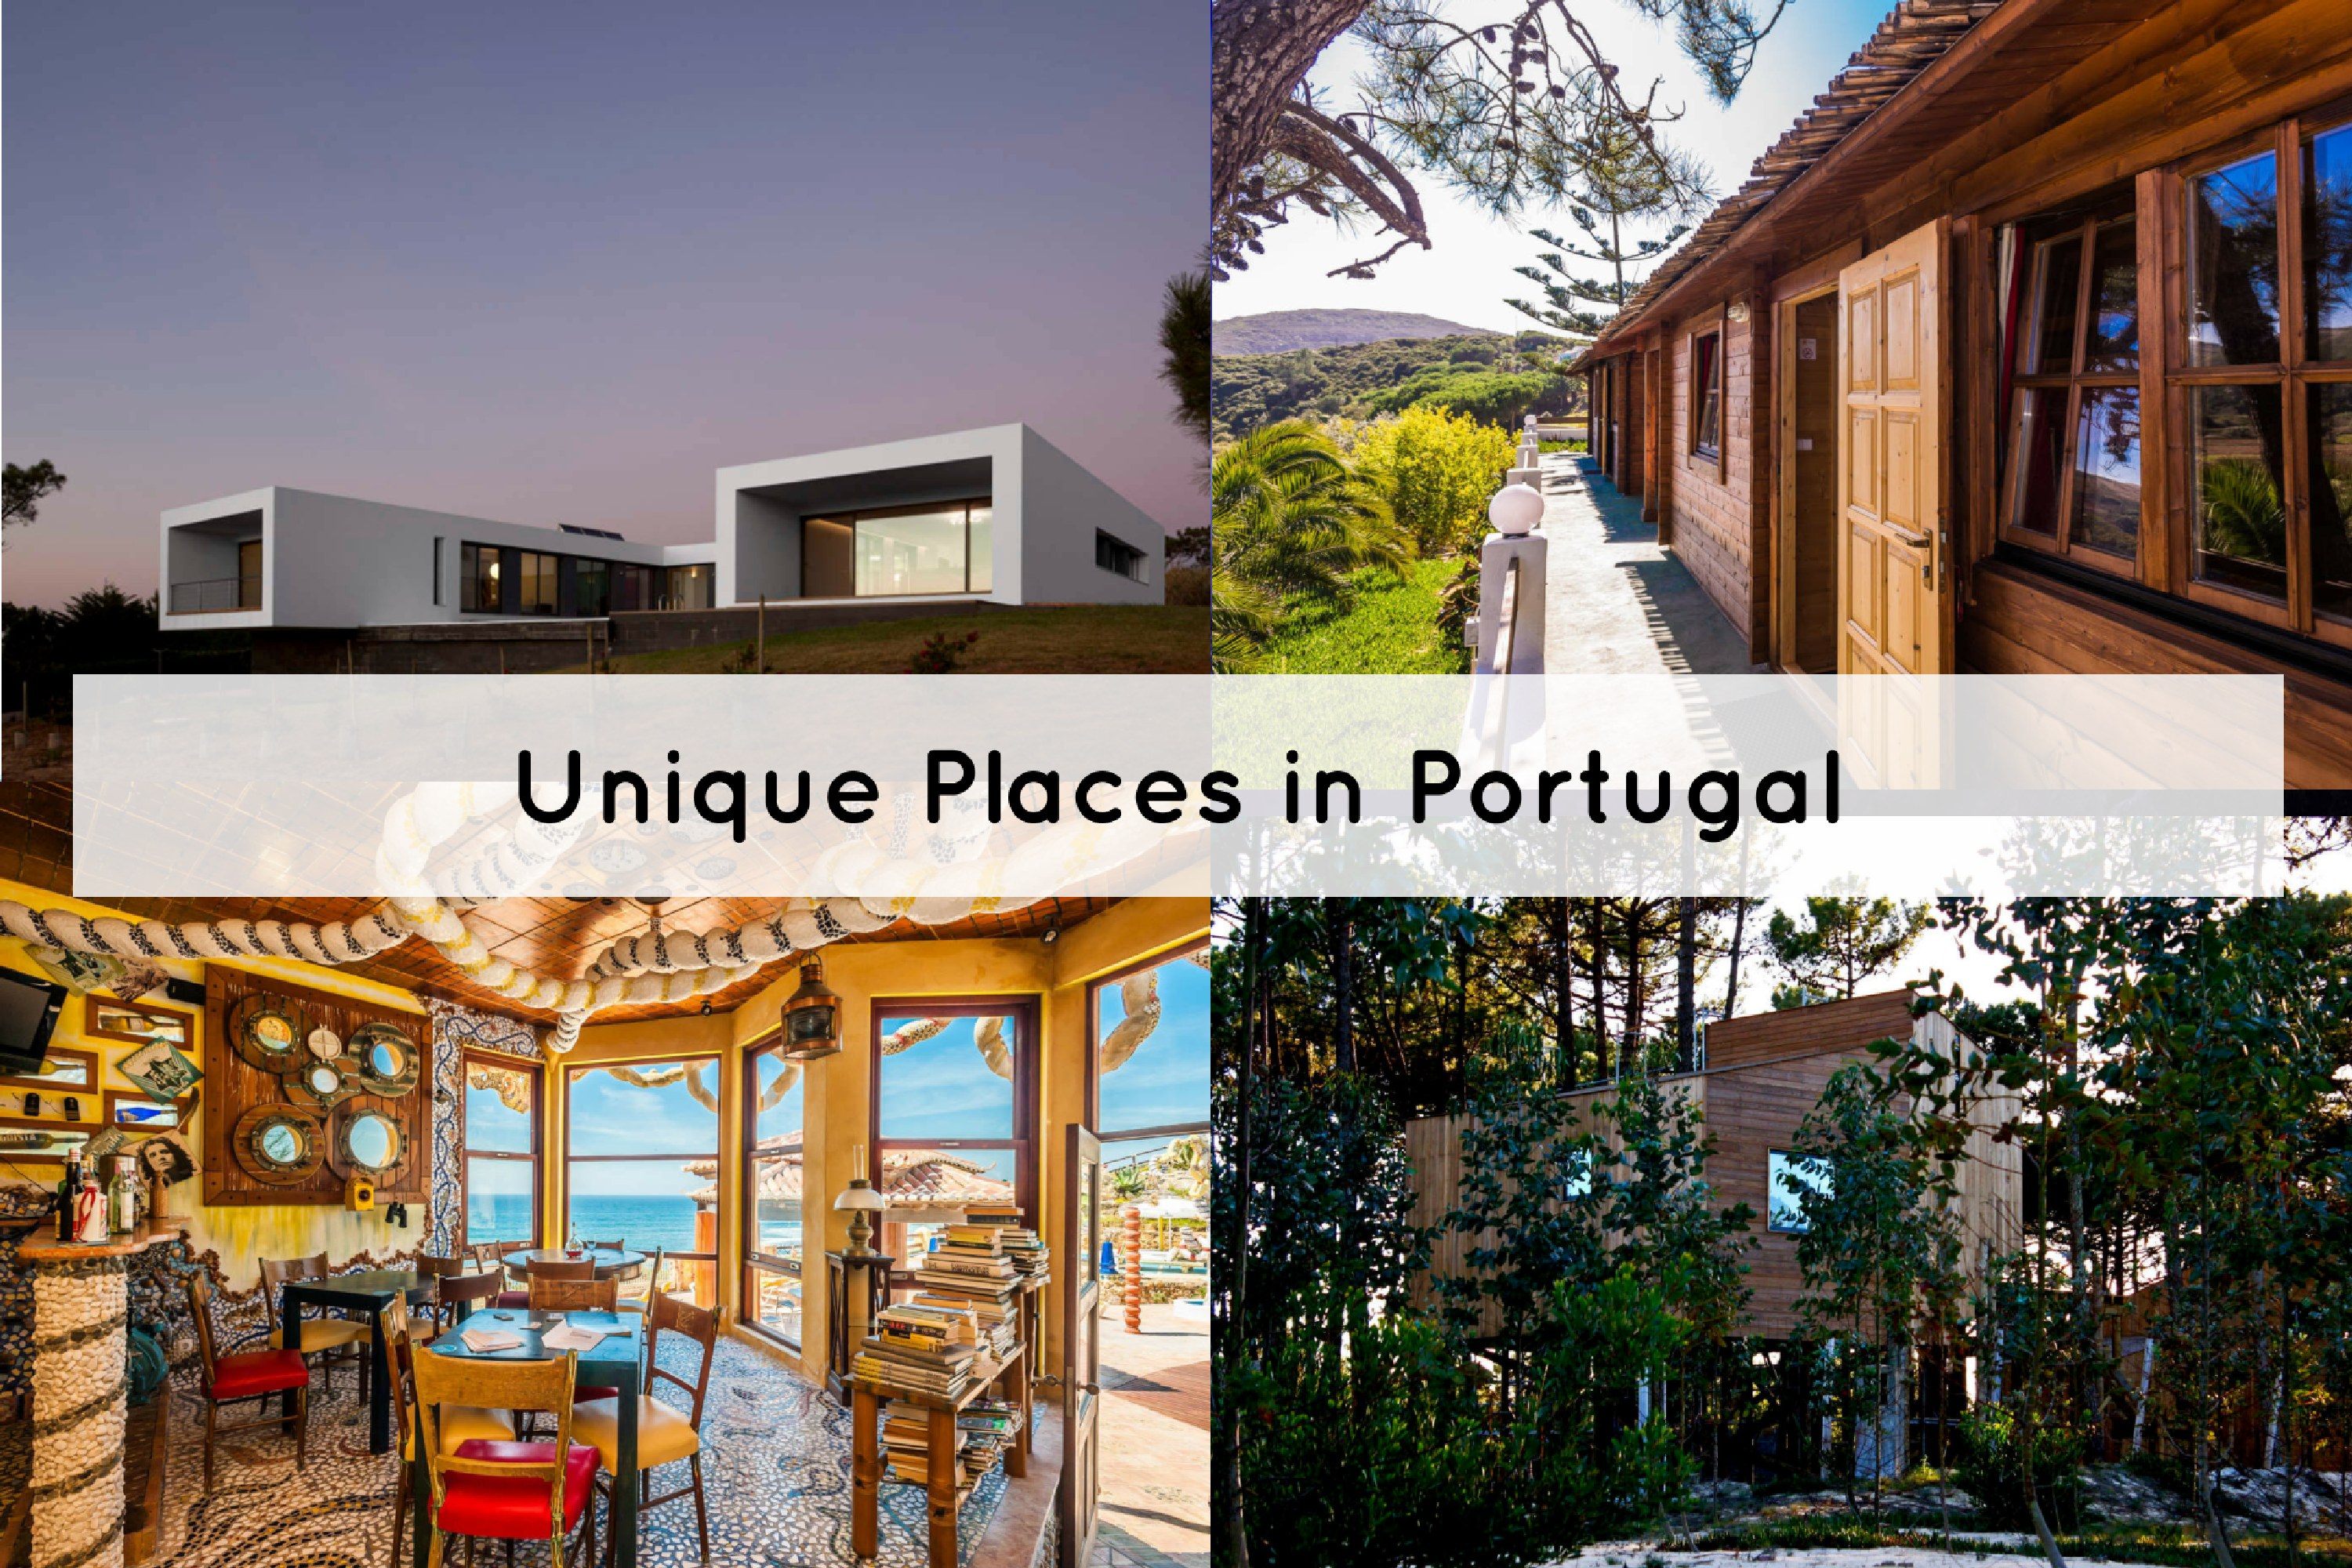 10 Of The Most Unique Surf Holiday Places to Stay In Portugal